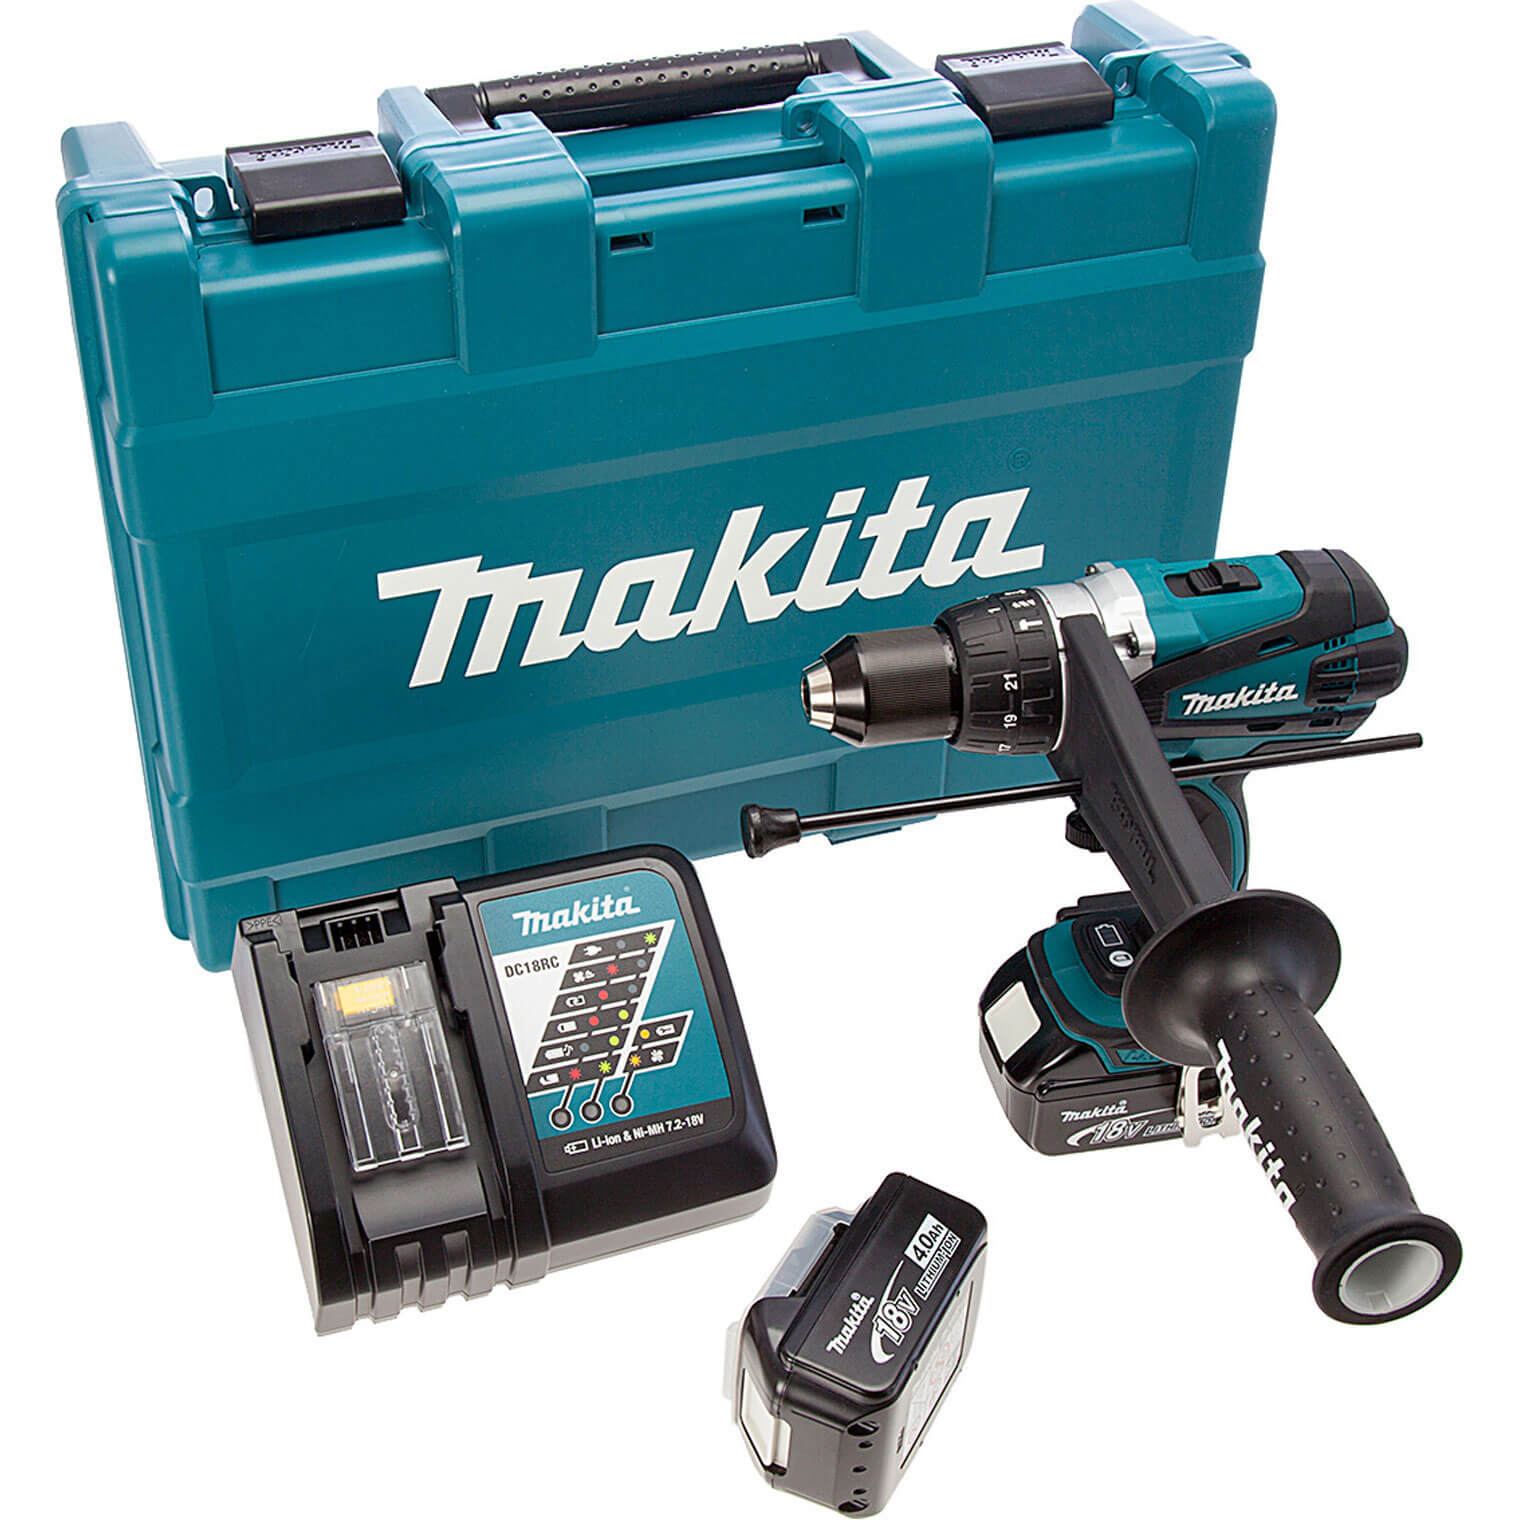 Image of Makita DHP458RME 18v Cordless XPT Combi Drill 2 Speed with 2 Lithium Ion Batteries 4ah